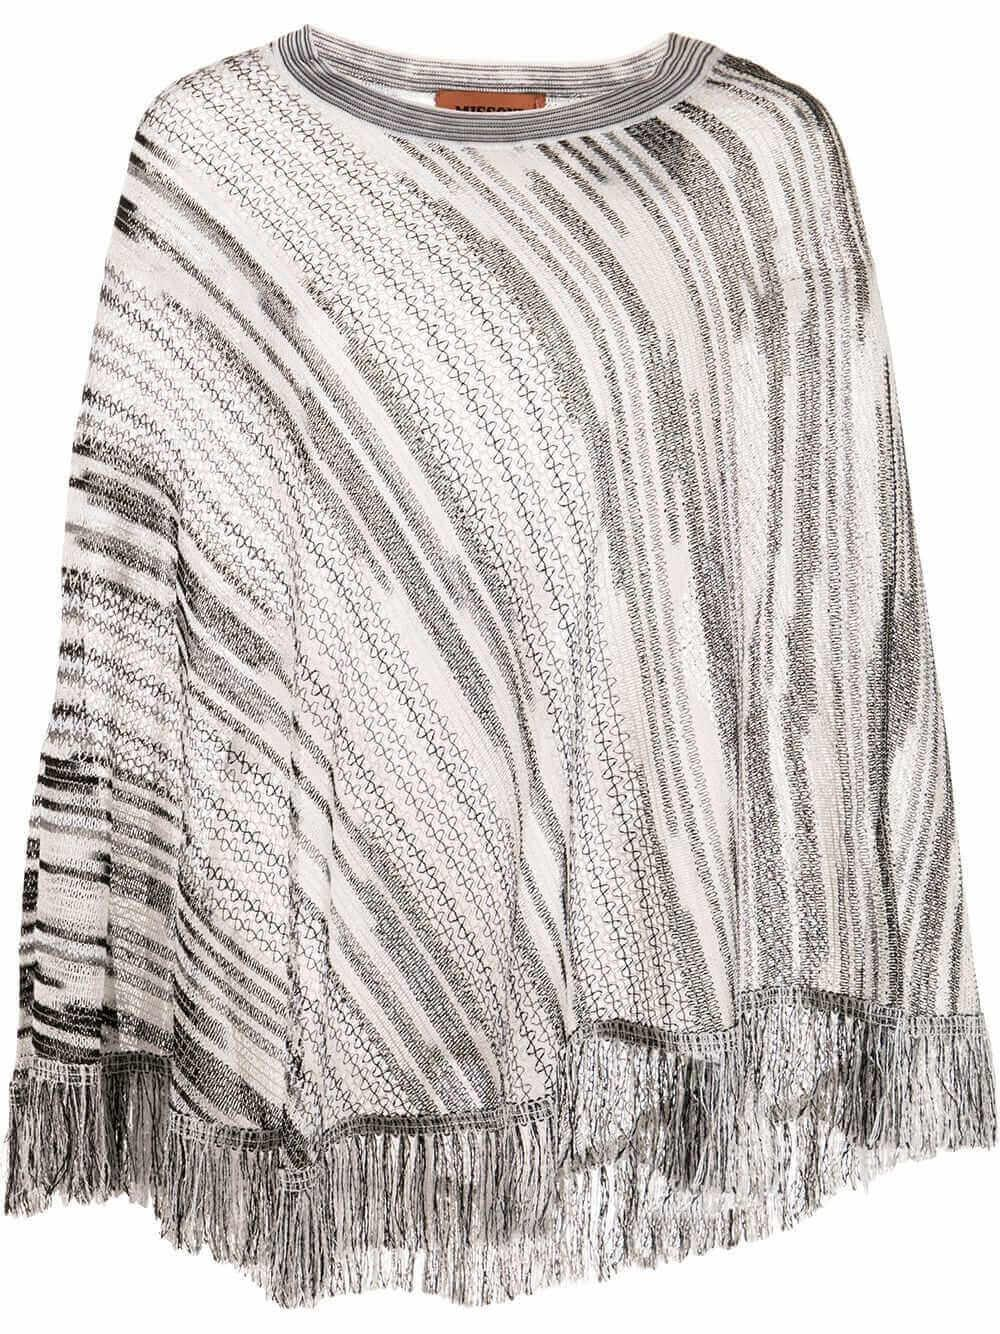 Poncho With Fringe Trim